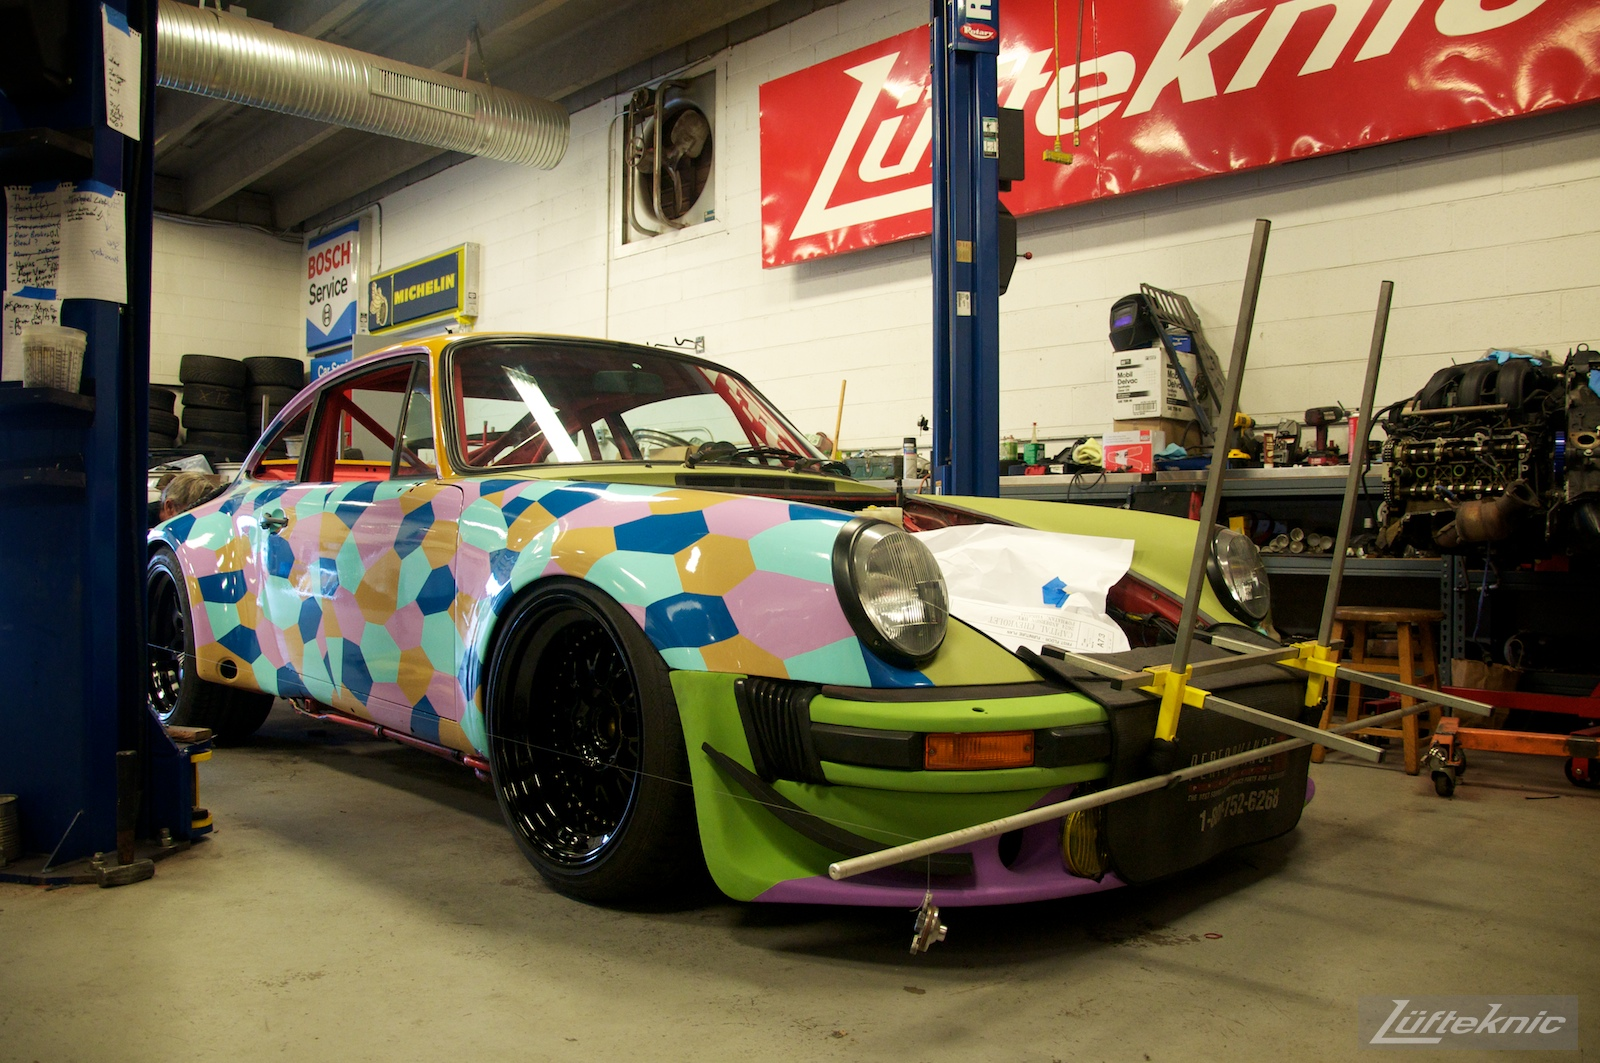 The Lüfteknic #projectstuka Porsche 930 Turbo on the ground with alignment strings